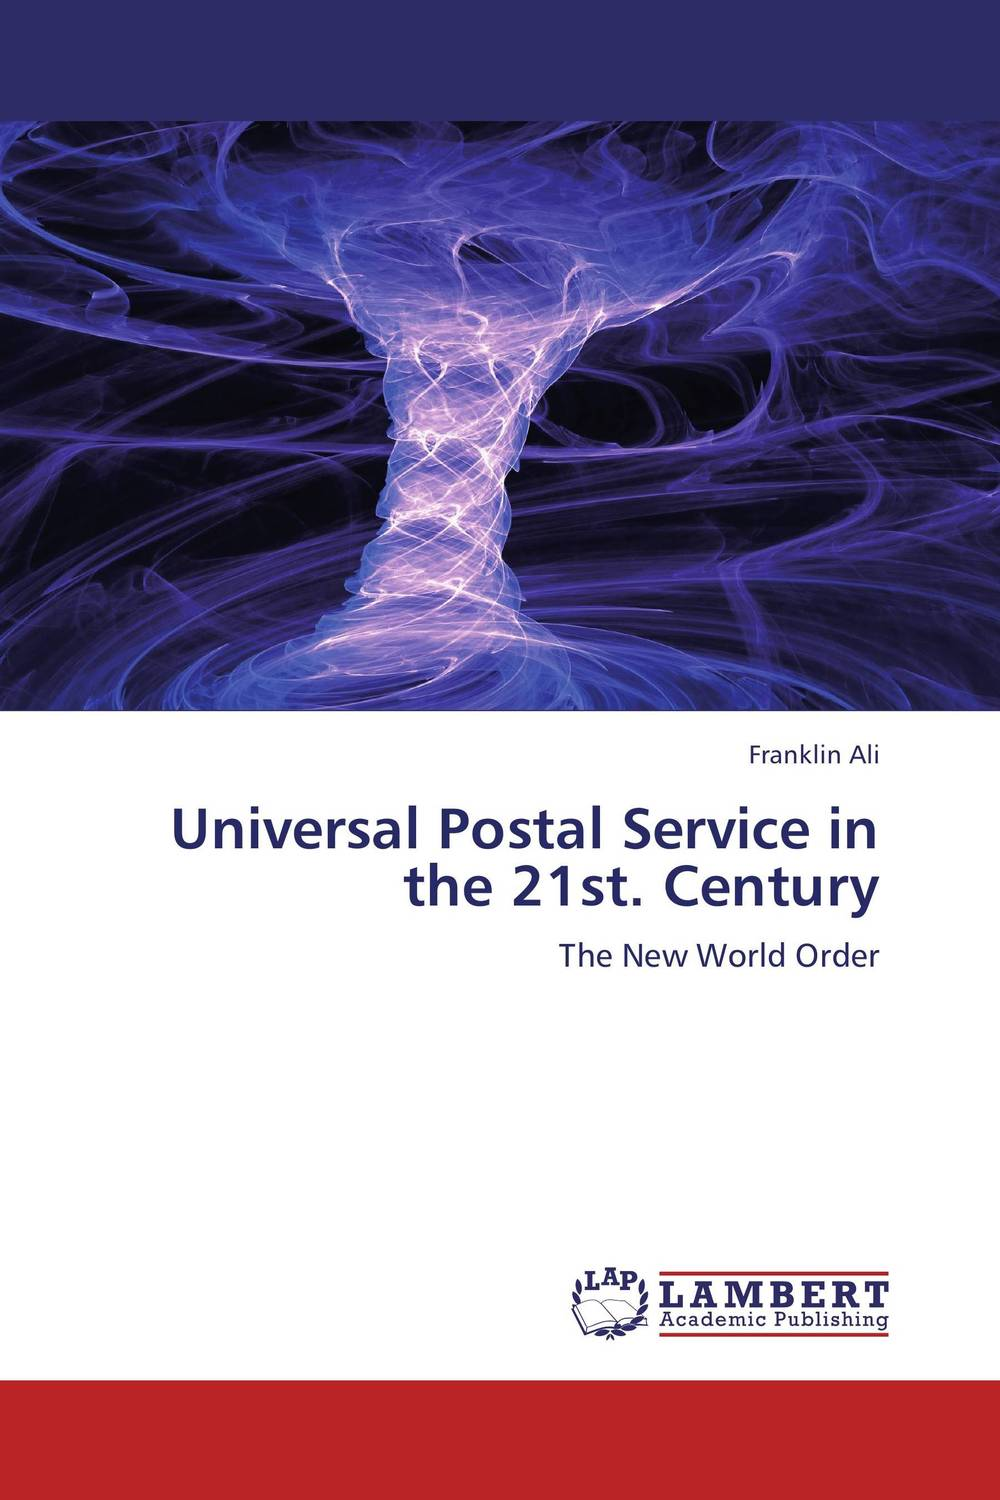 Universal Postal Service in the 21st. Century